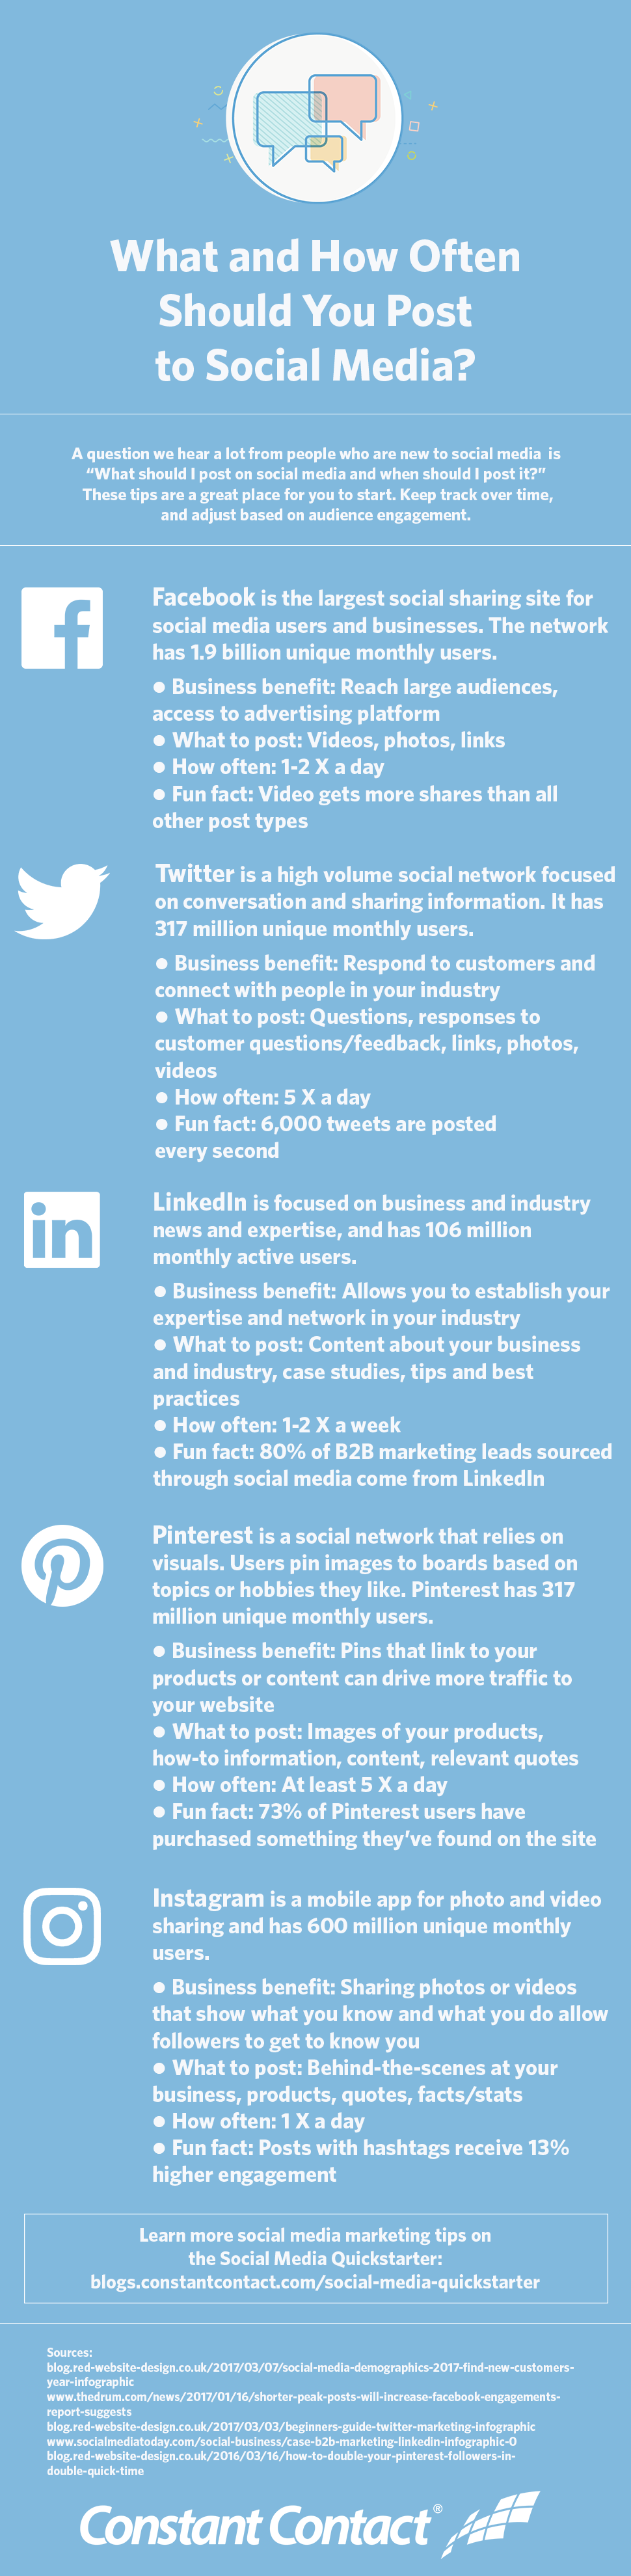 What And How Often To Post On Social Media? - #infographic